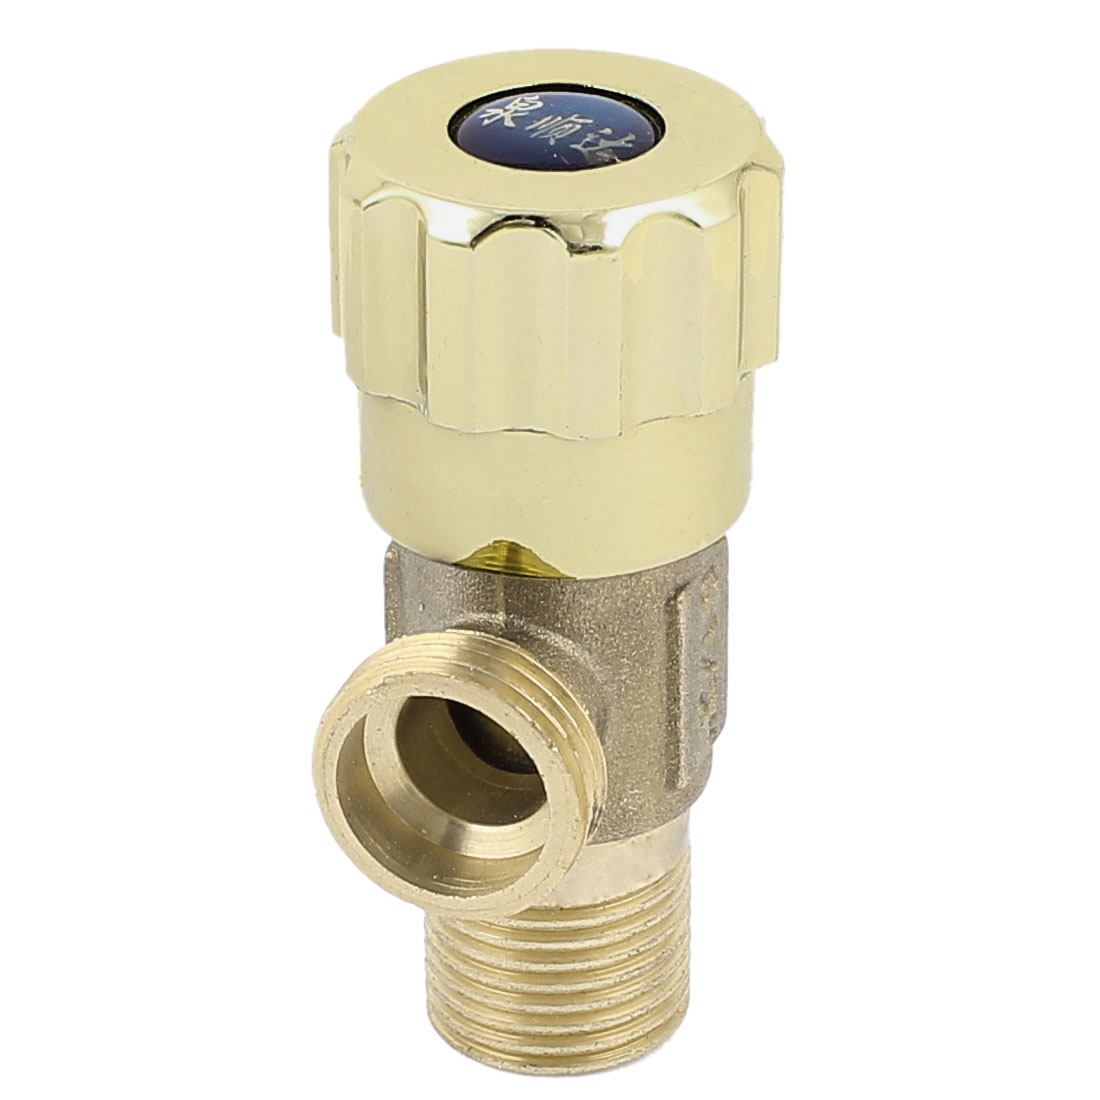 Kitchen Bathroom Brass Faucet 1/2BSP Male Thread Water Pipe Angle Valve